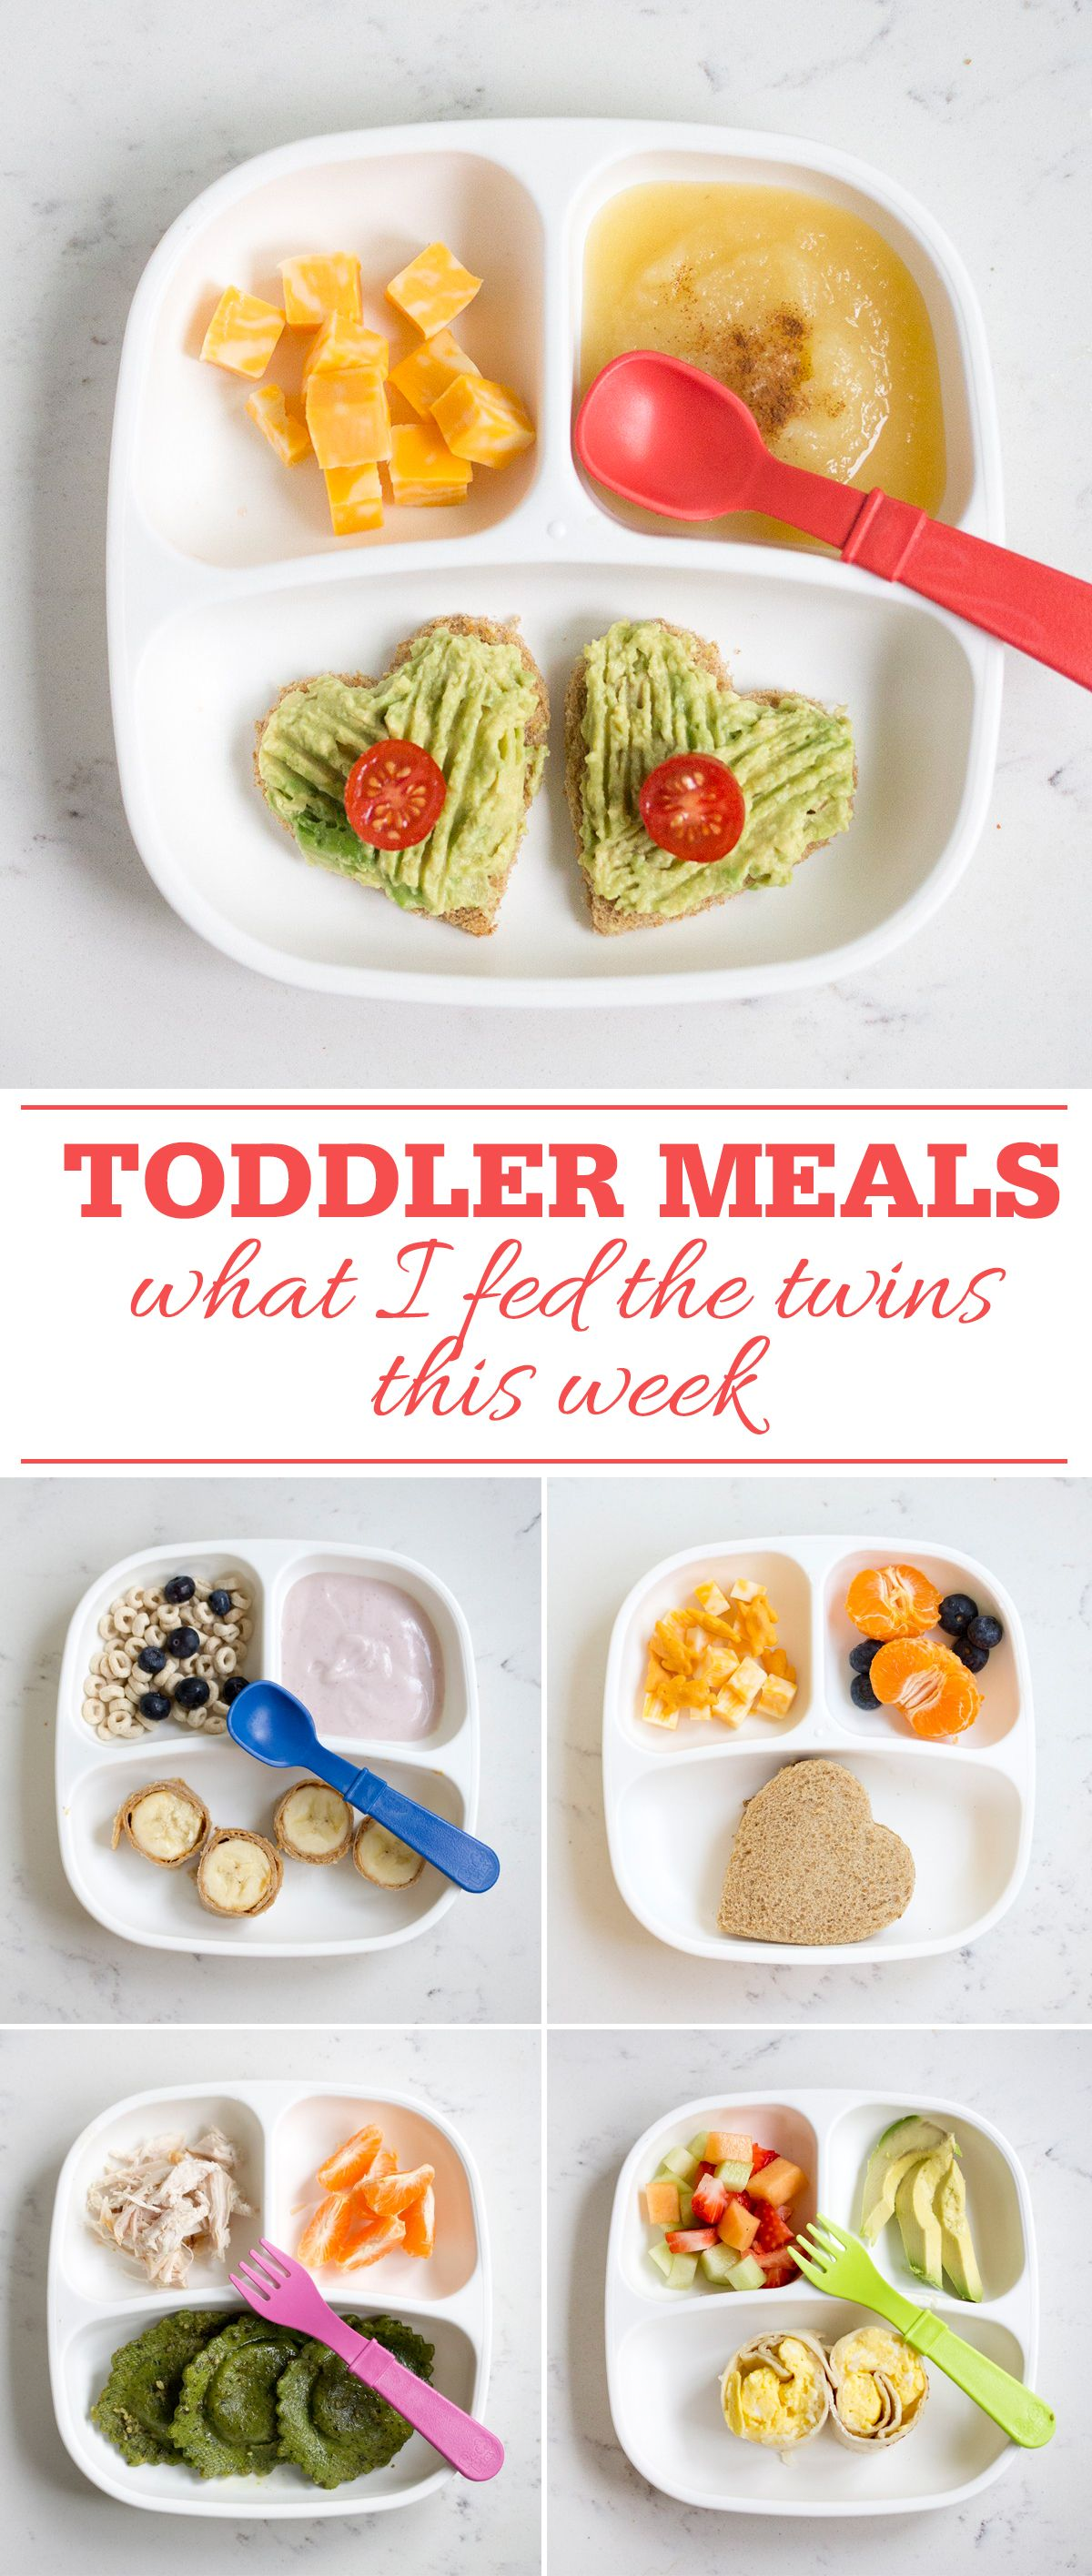 What i fed the twins this week meals twins and toddler food toddler meals what i fed the twins this week forumfinder Image collections